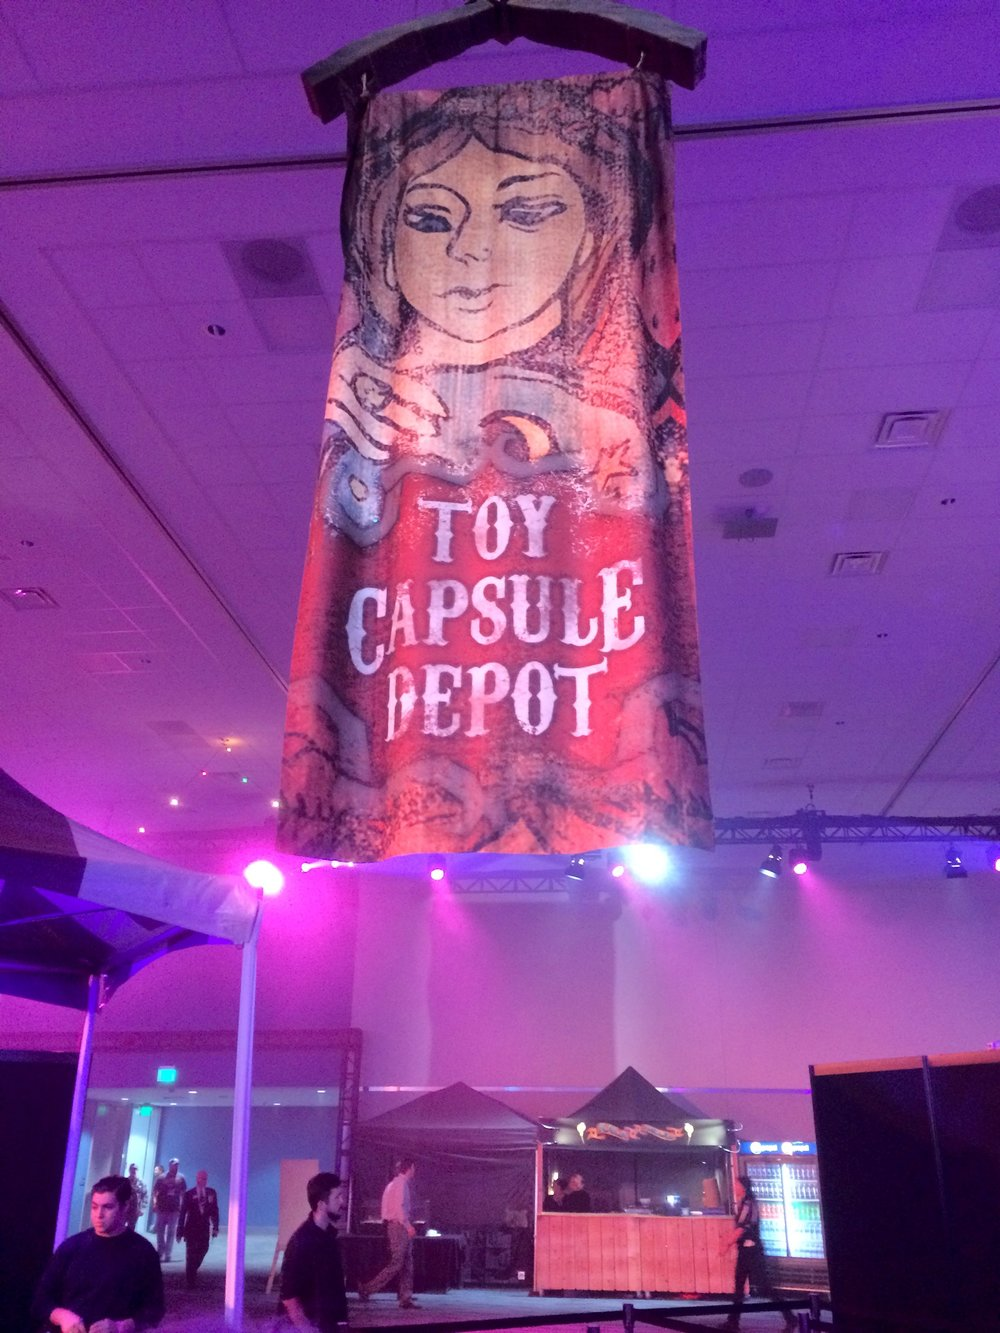 Toy Capsule Depot at BlizzCon 2017.